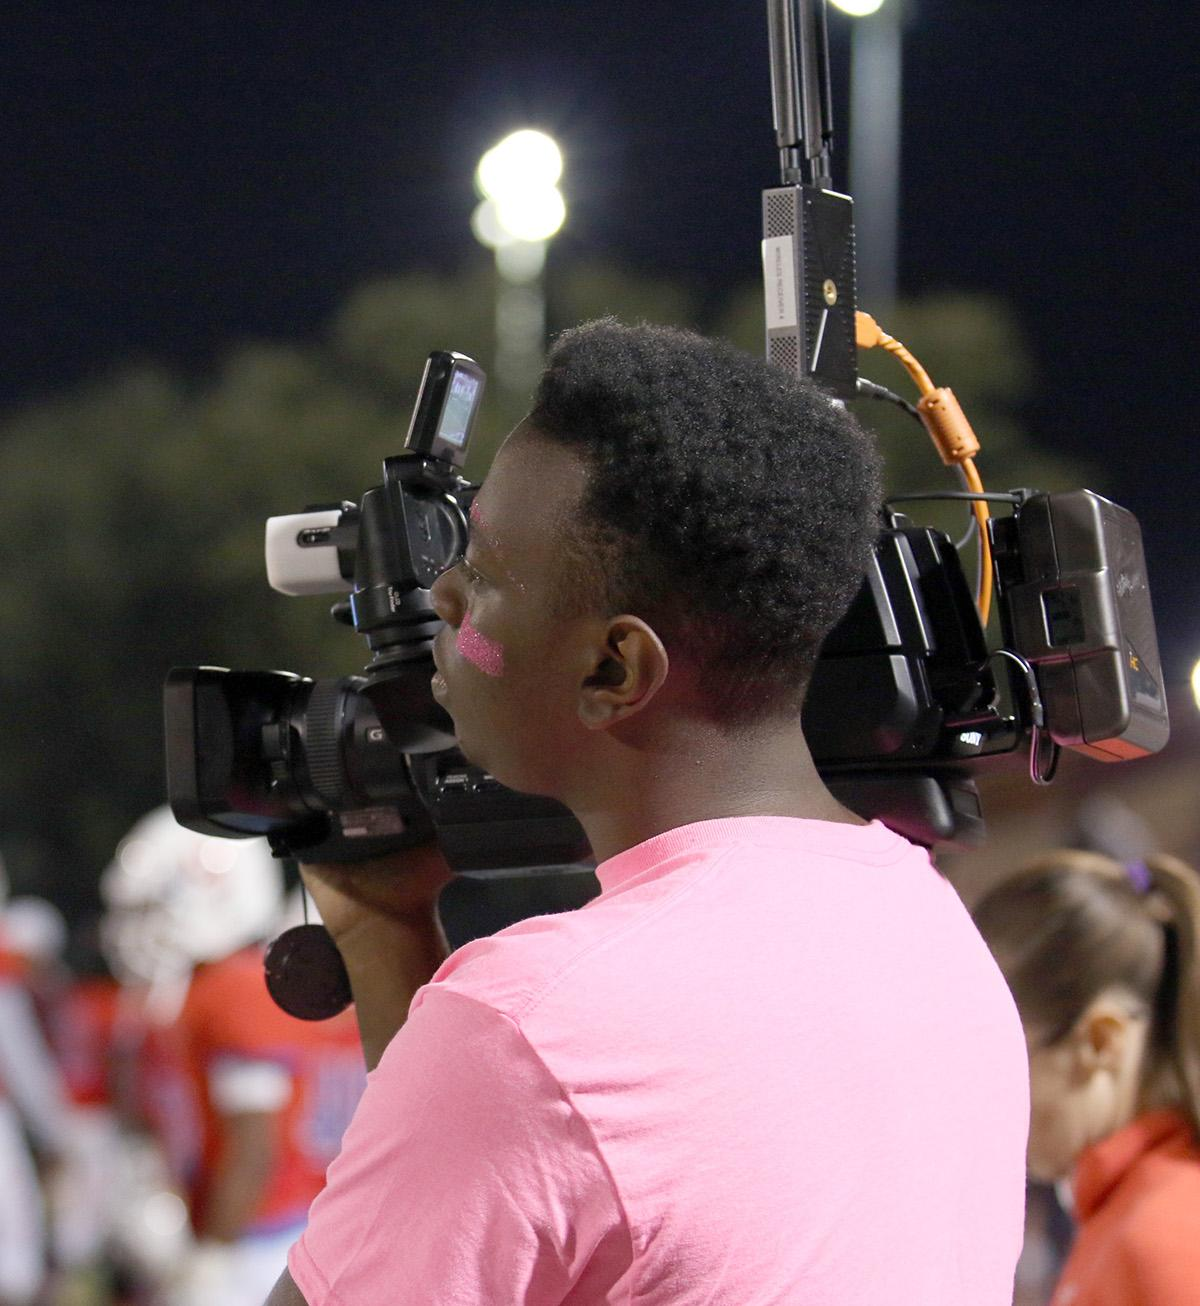 Ricardo Martin works a video camera on the field of the Duncanville Vs. DeSoto football game for the scoreboard. (Emlyn Almanza photo)